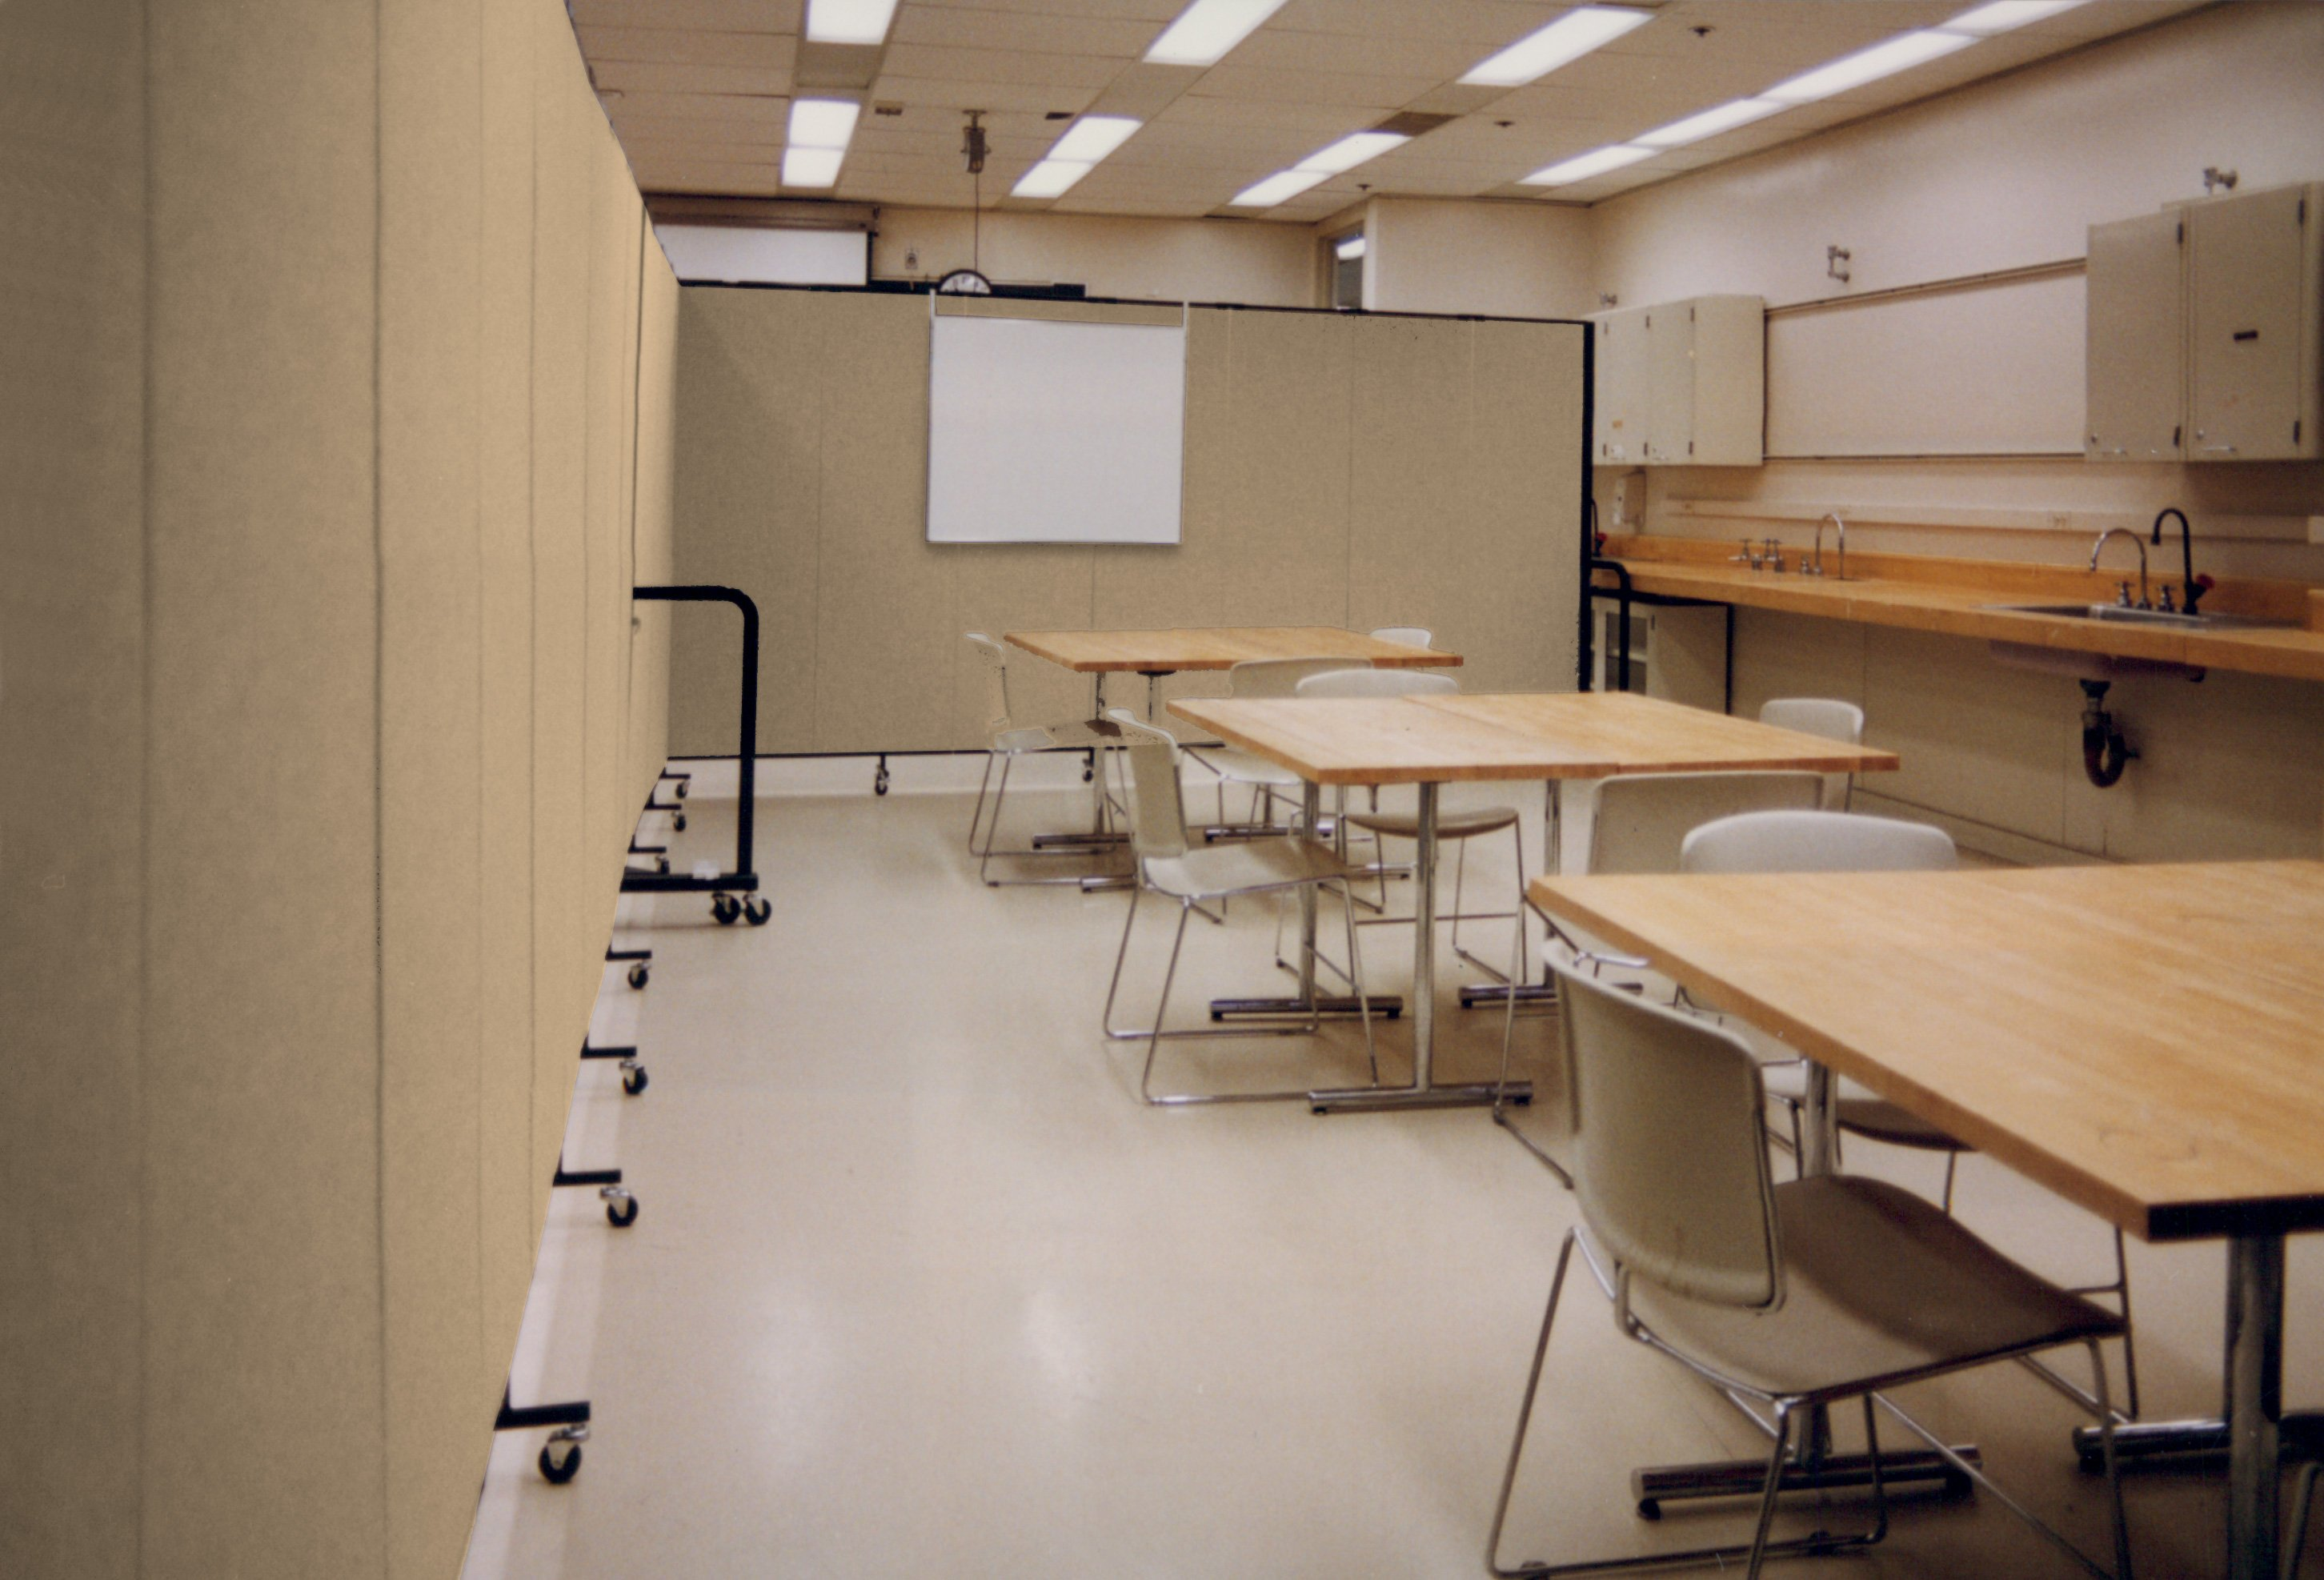 Acoustical dividers + markerboard + tables = classroom